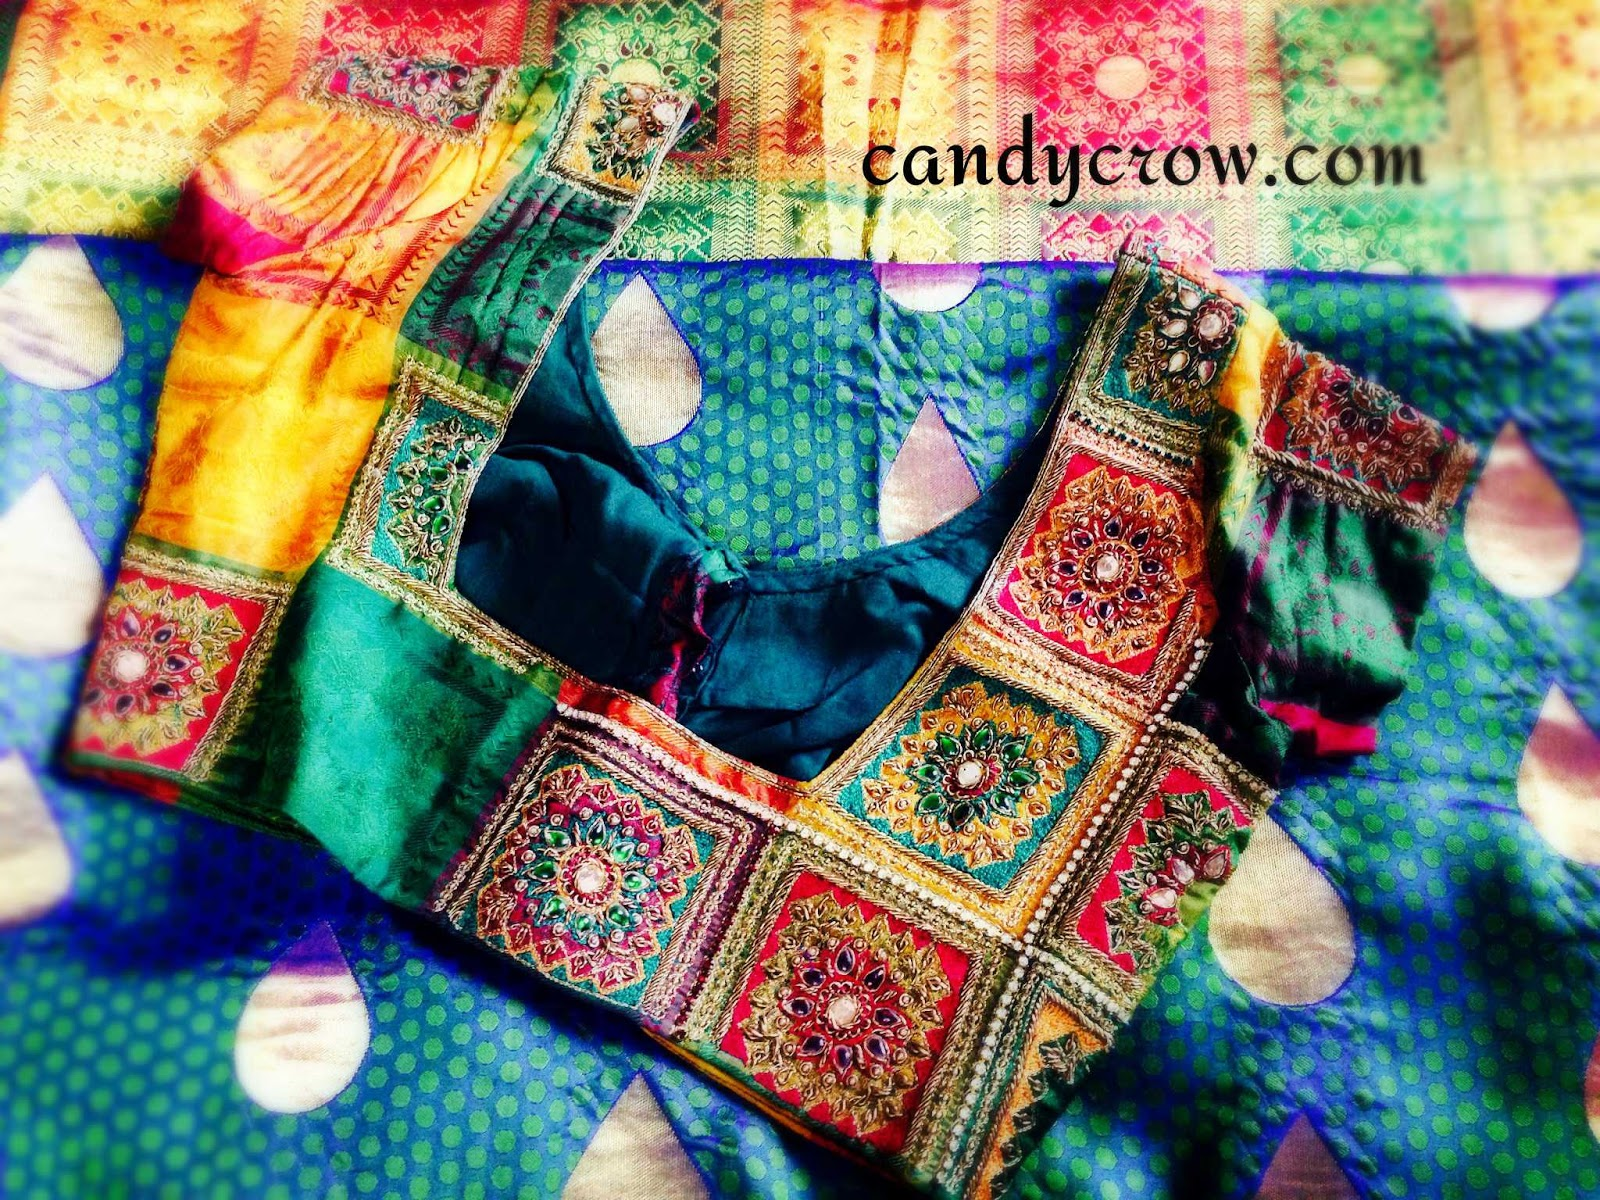 Silk Saree Blouse Design | Diwali Shopping ( Part 2 ) | Candy Crow | Indian Beauty And Lifestyle ...